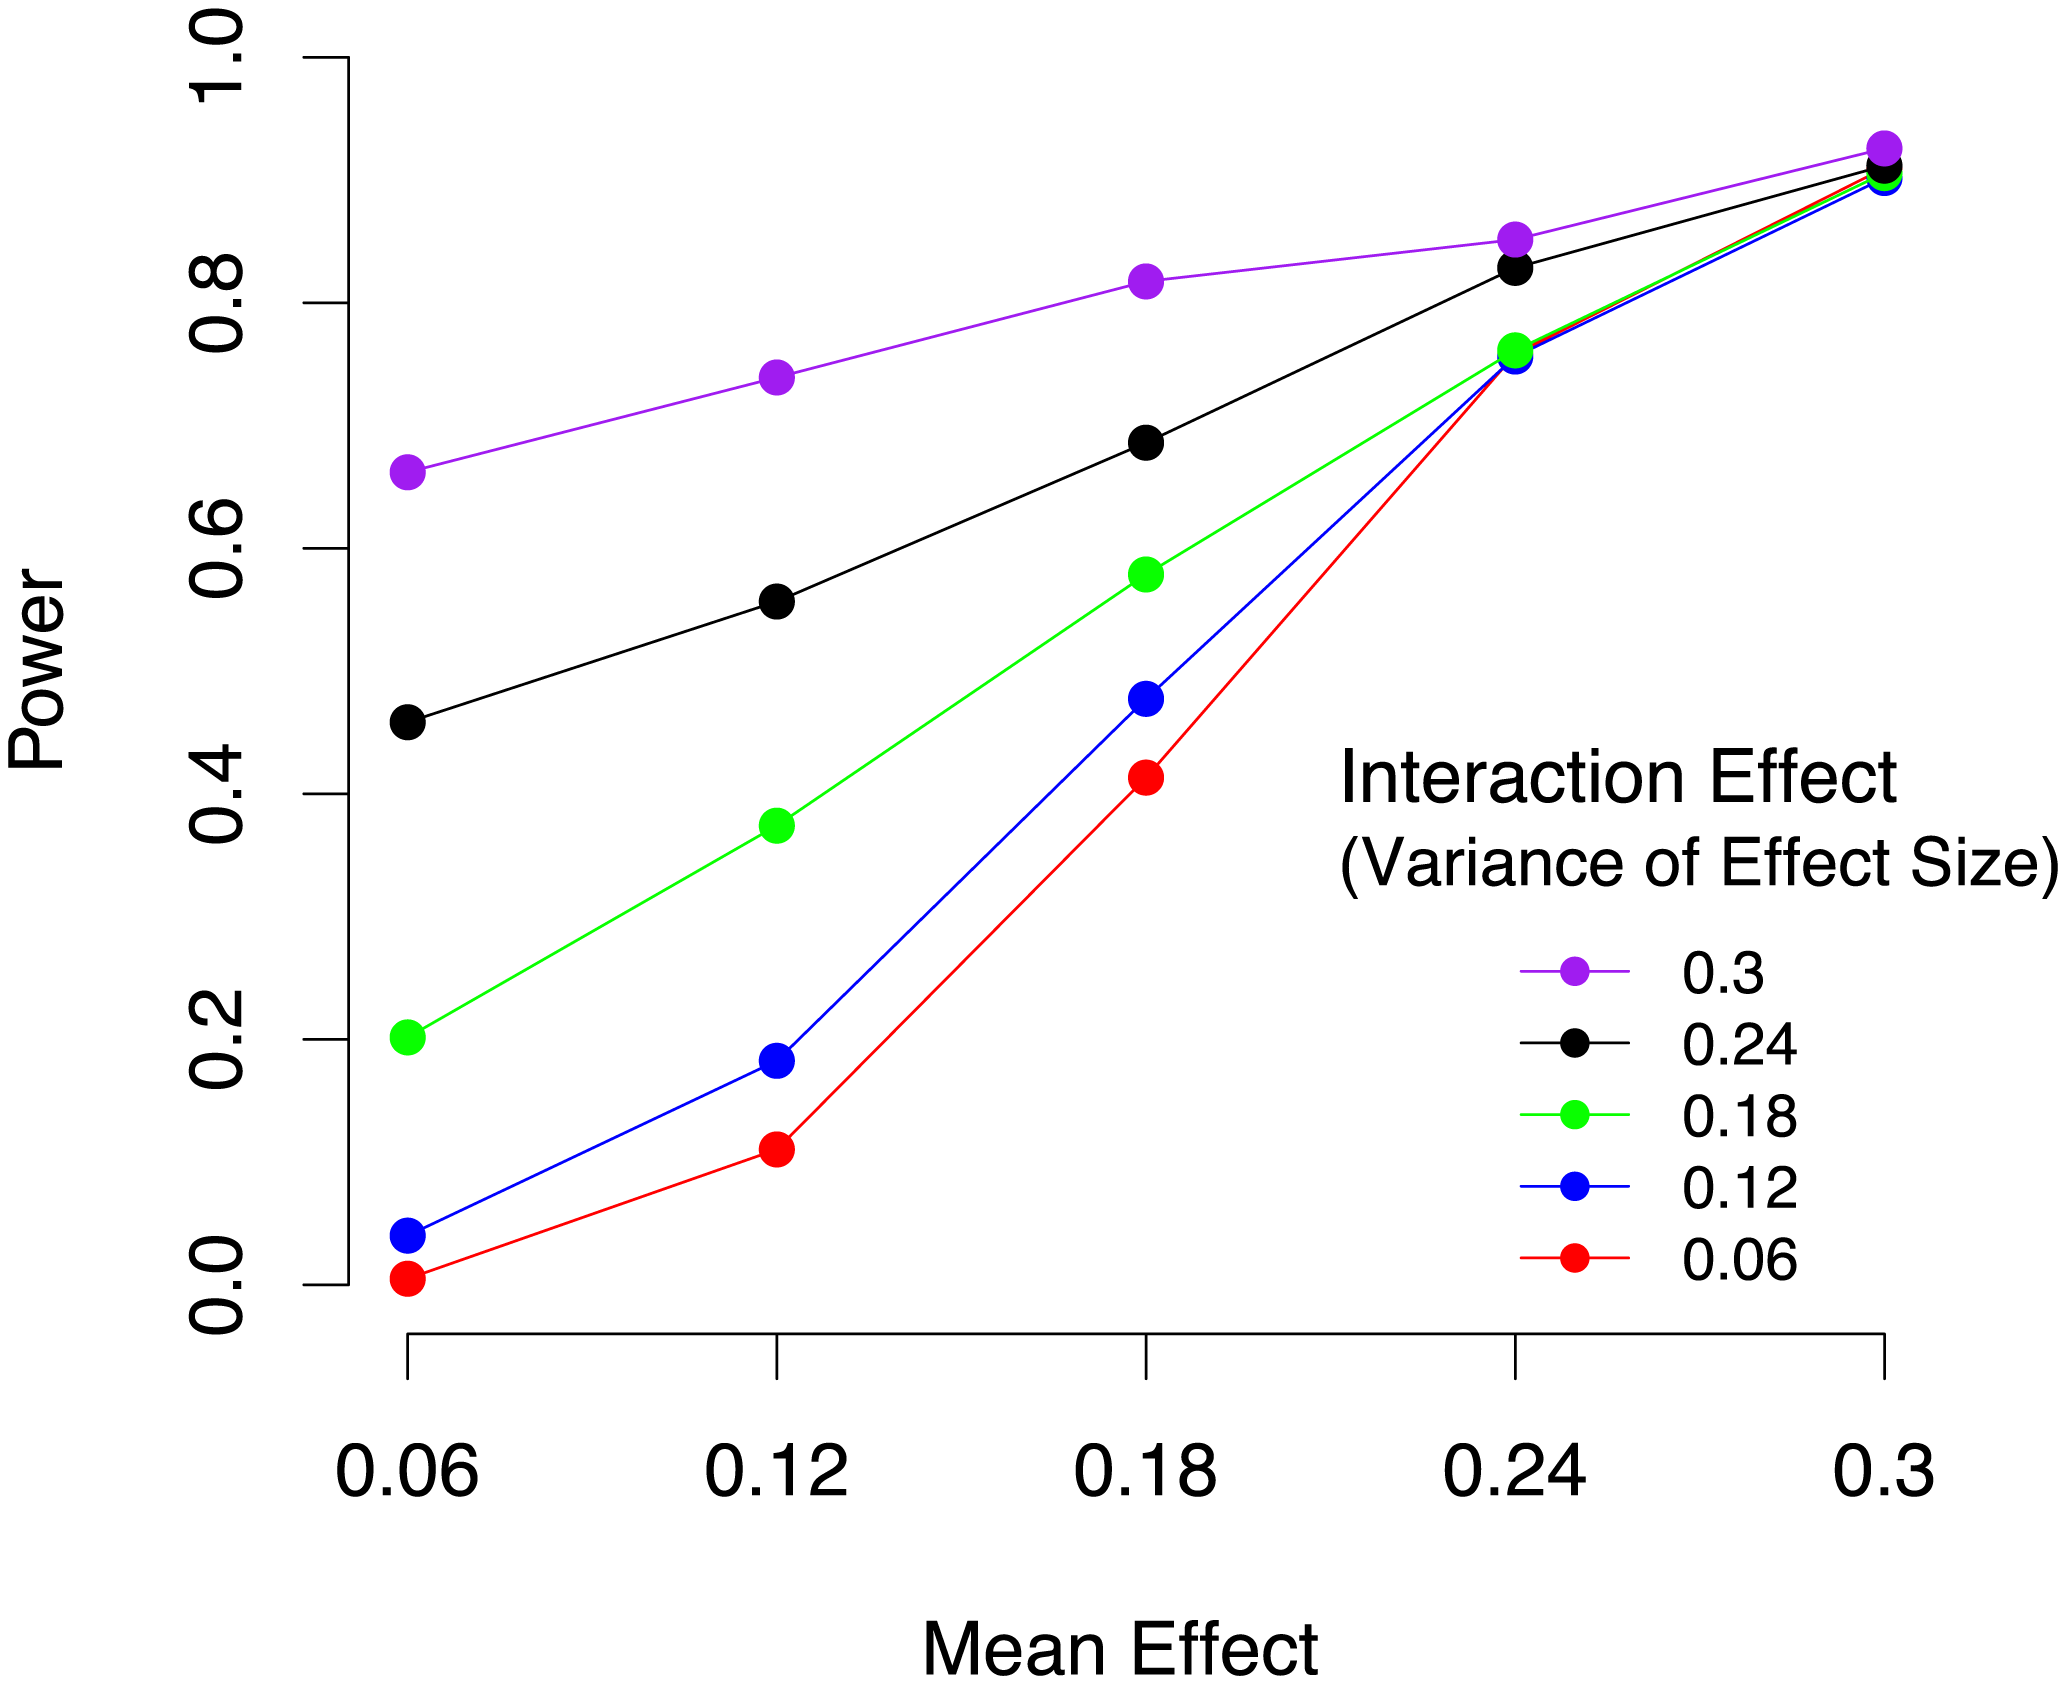 Power of mouse meta-analysis to identify gene-by-environment interactions in 4,965 animals from 17 studies under varying mean effect sizes and the per study variance of the effect size which corresponds to gene-by-environment effects.